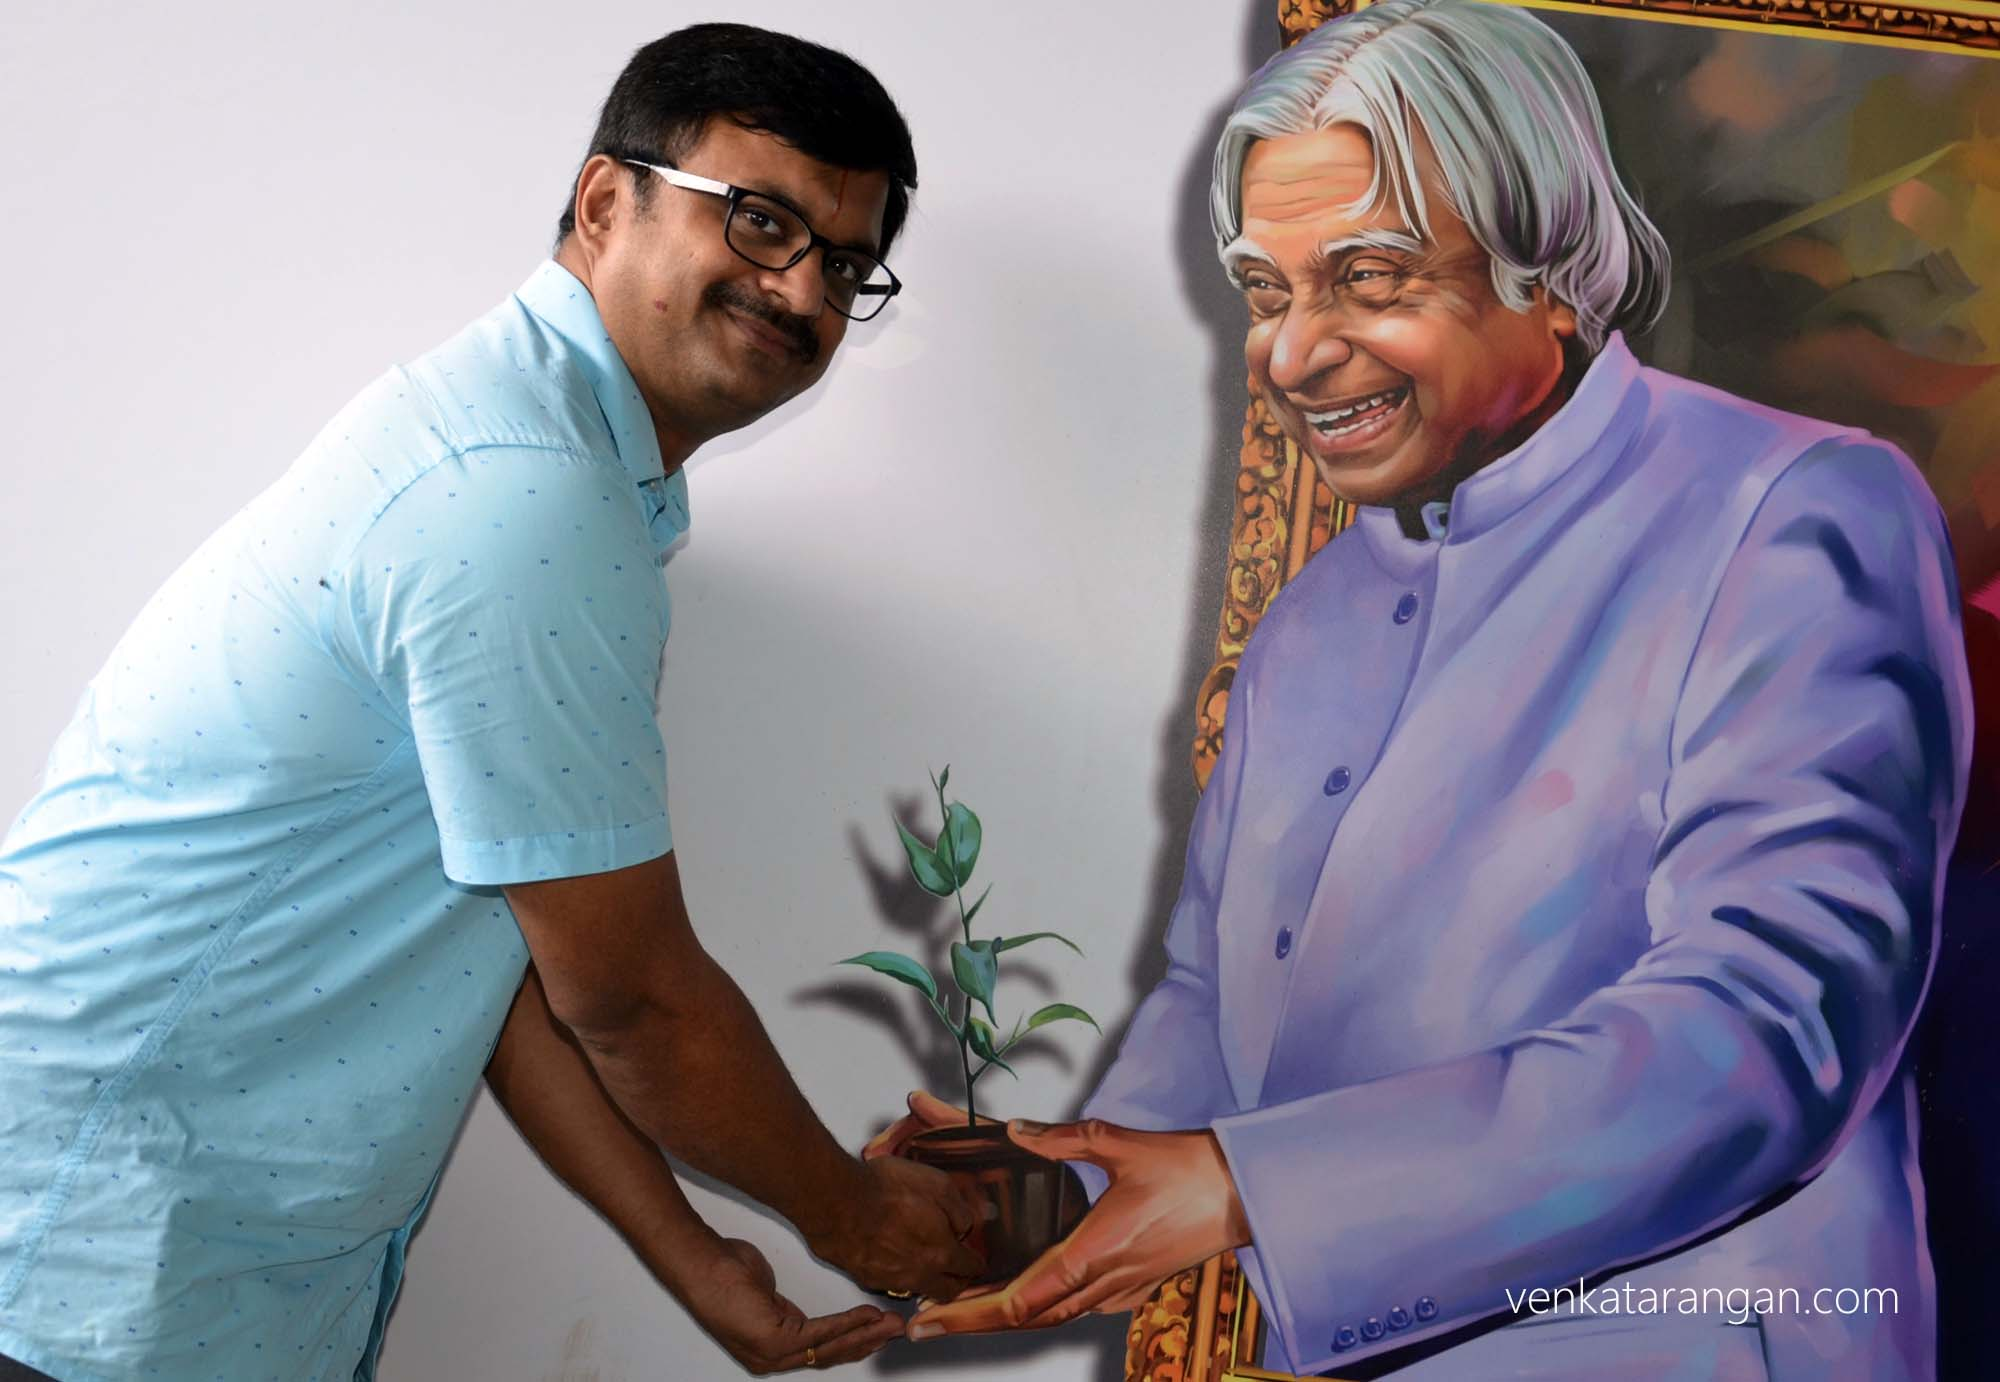 In front of a 3-dimensional portrait of Dr A.P.J. Abdul Kalam